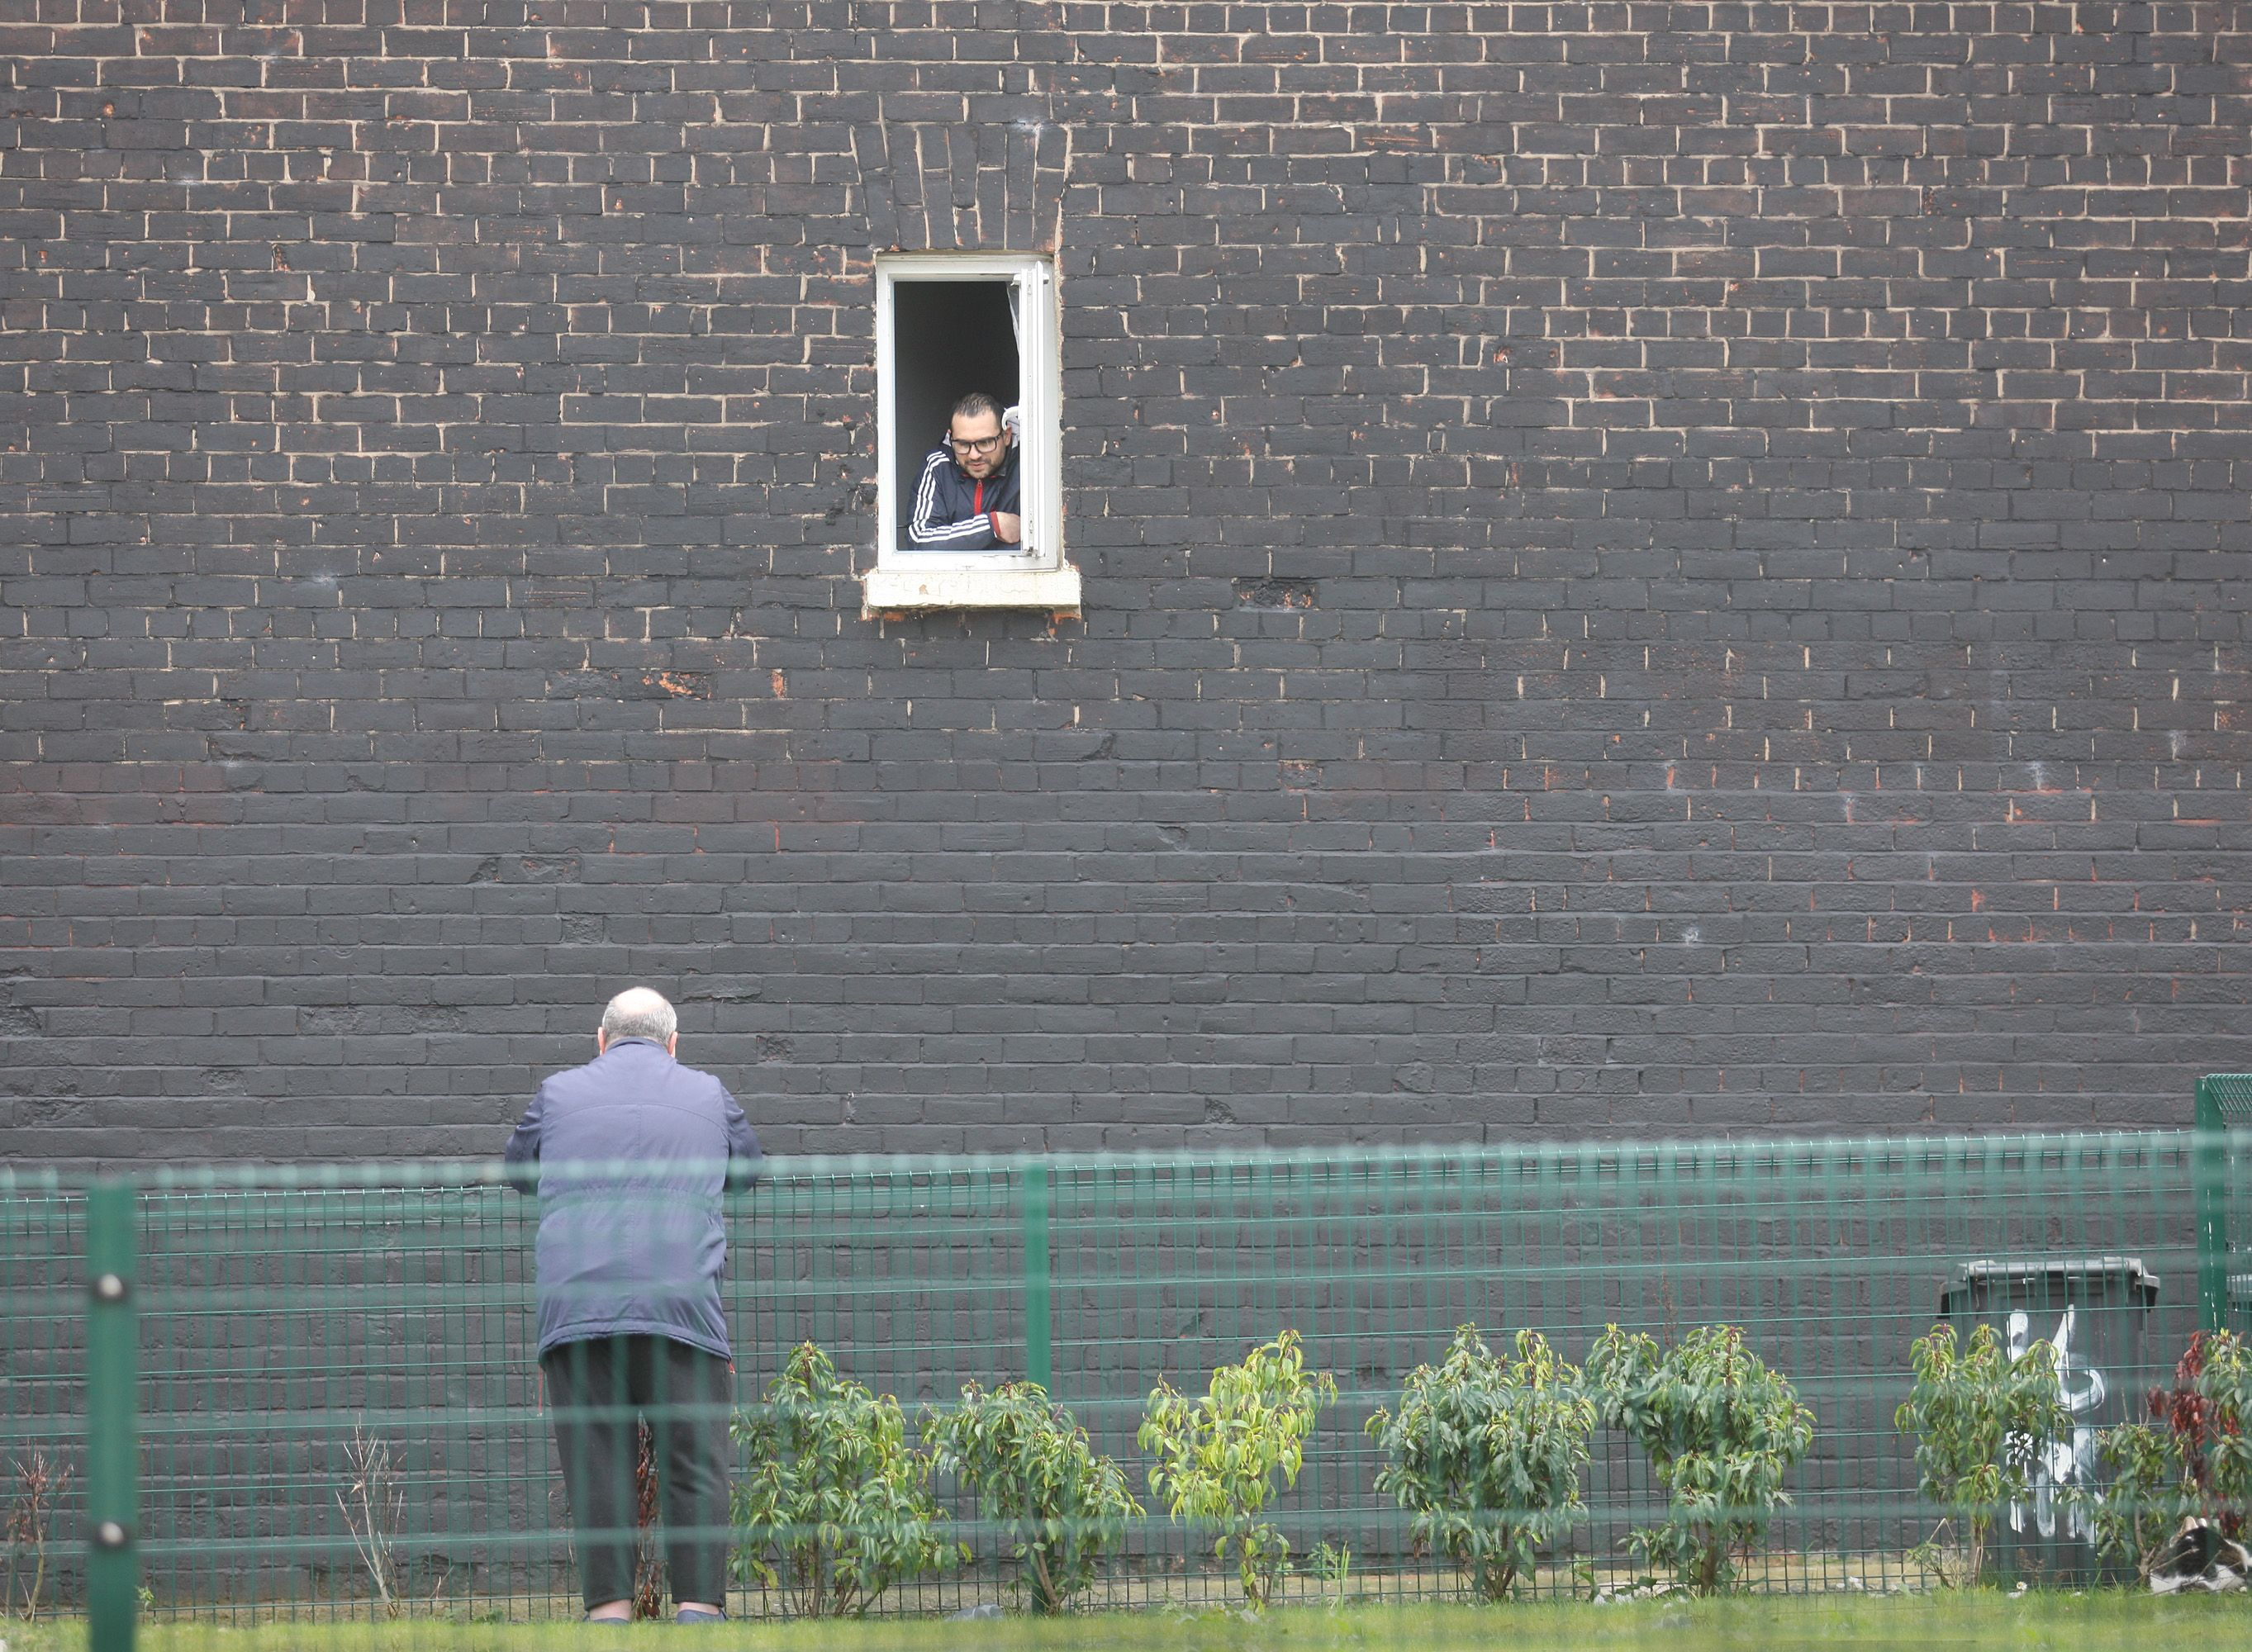 FROM A DISTANCE: Two chums chat during the spring Covid surge